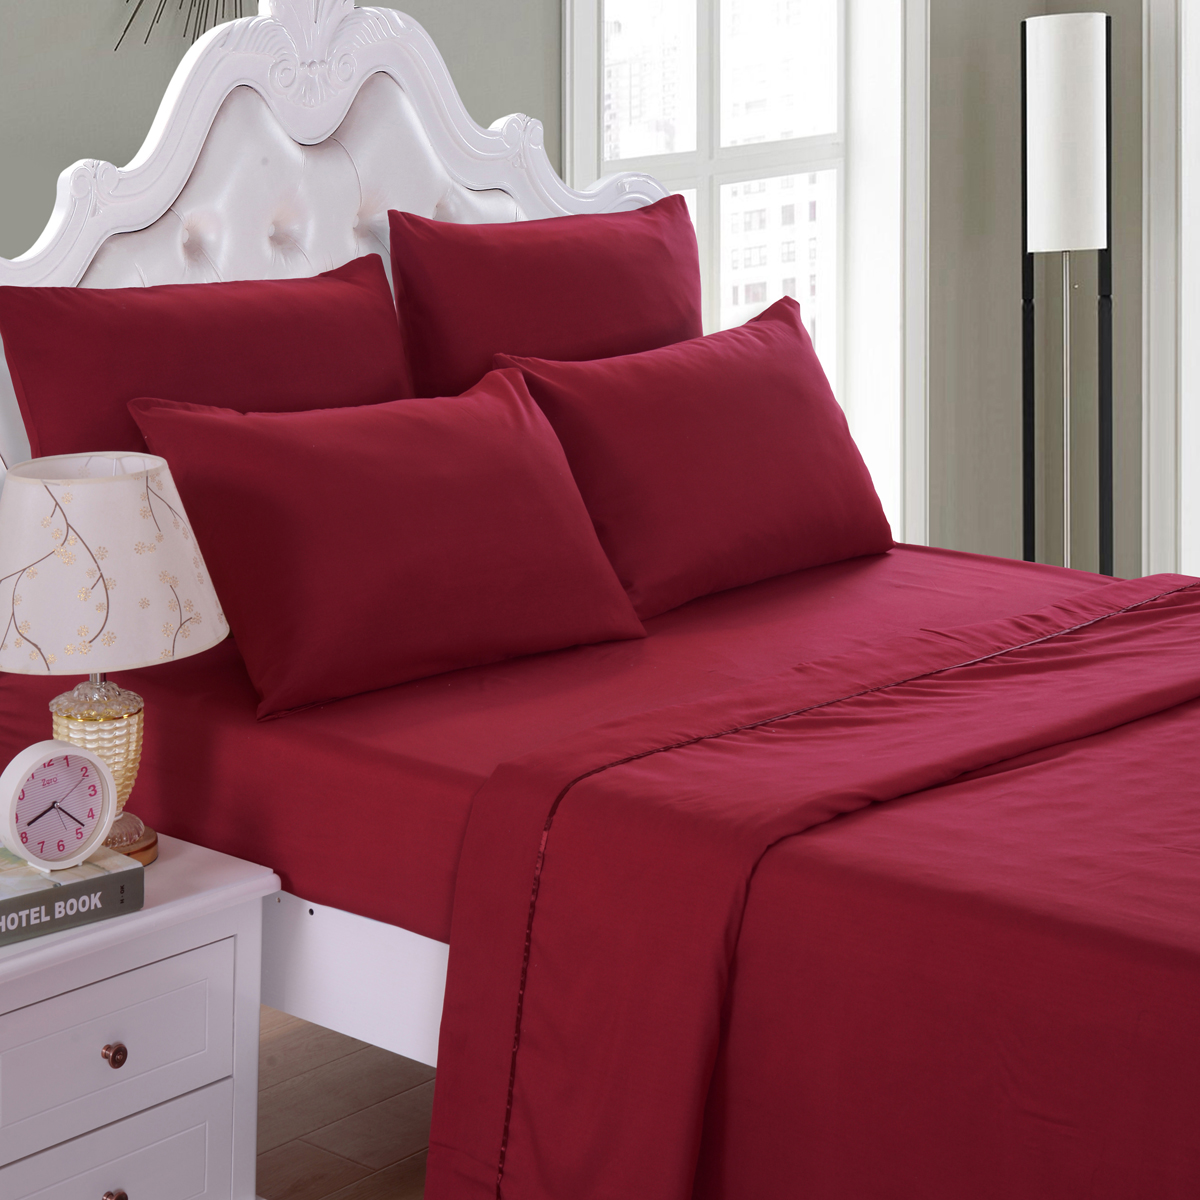 6 Piece Soft Microfiber Bed Sheet Set Deep Pocket Up To 16 Wrinkle Fade Resistant Collection Queen King Full Twin